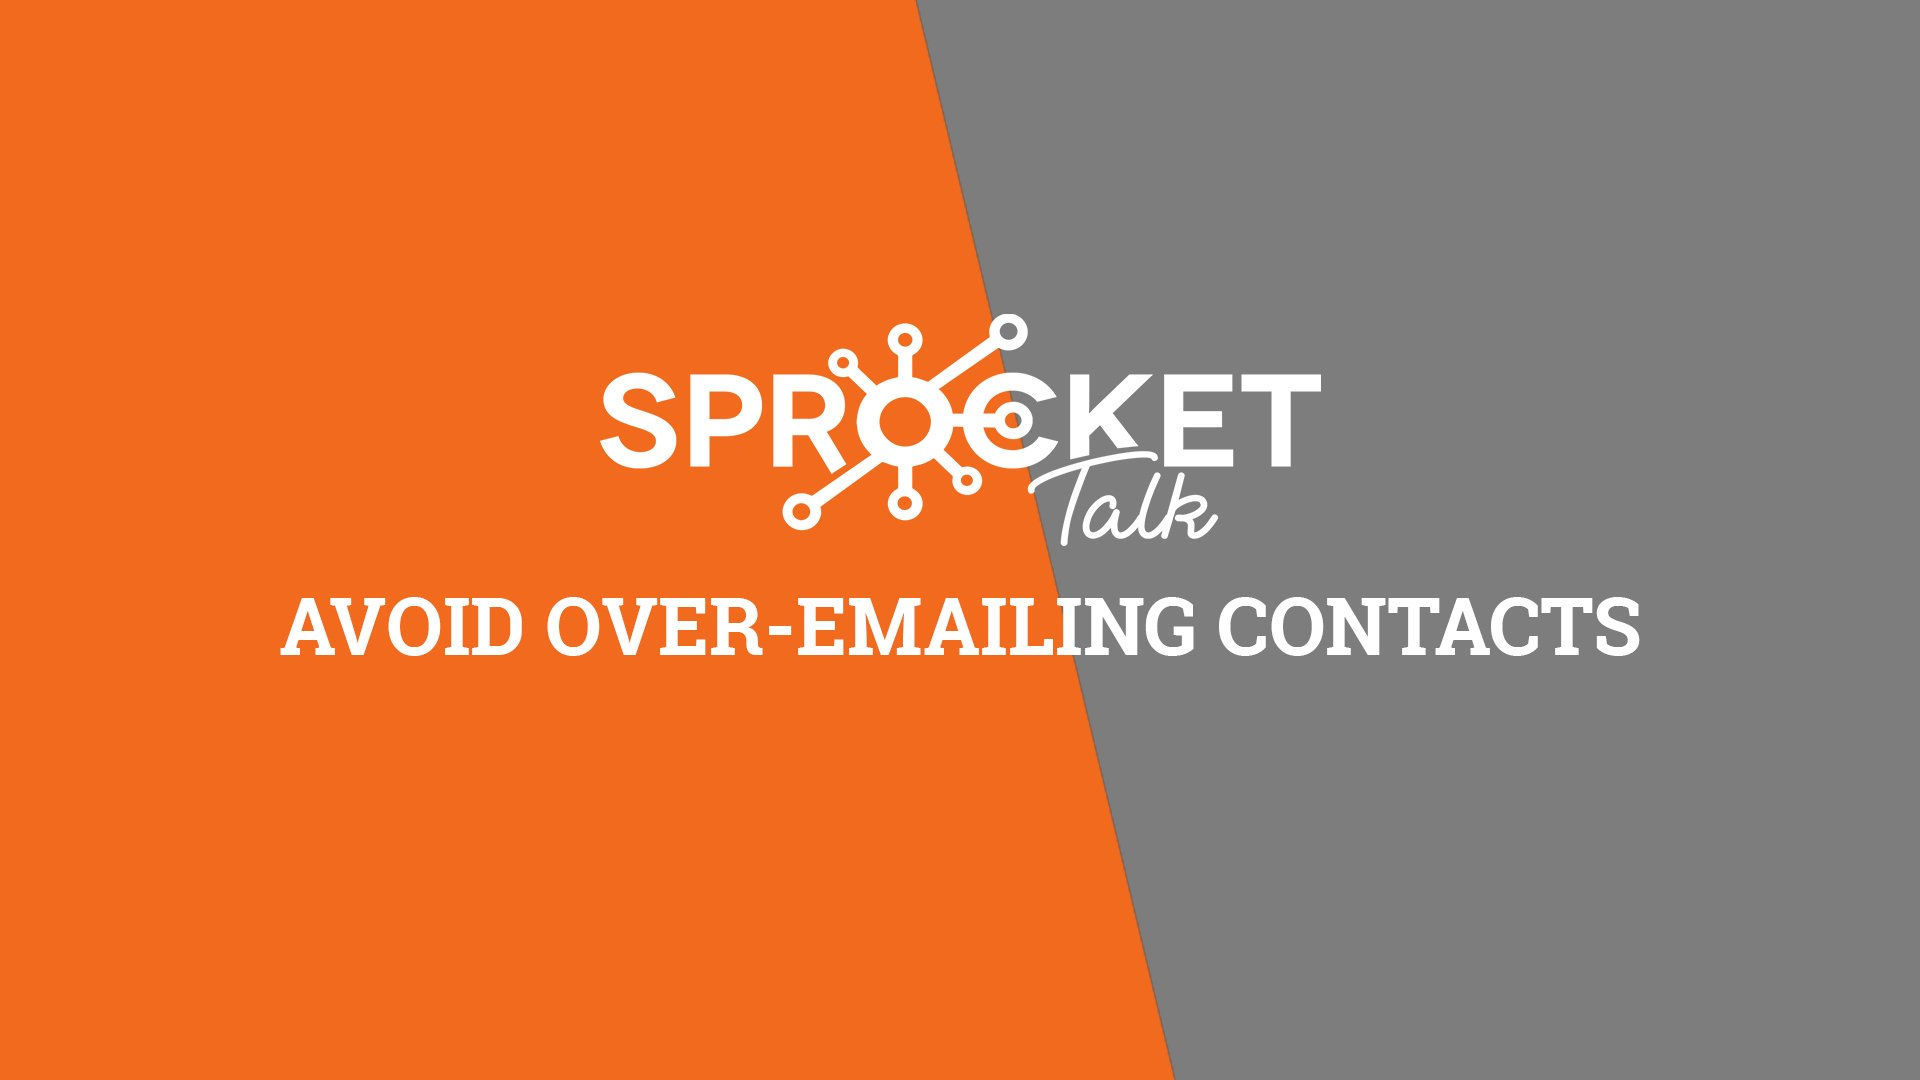 Avoid Over-Emailing Contacts